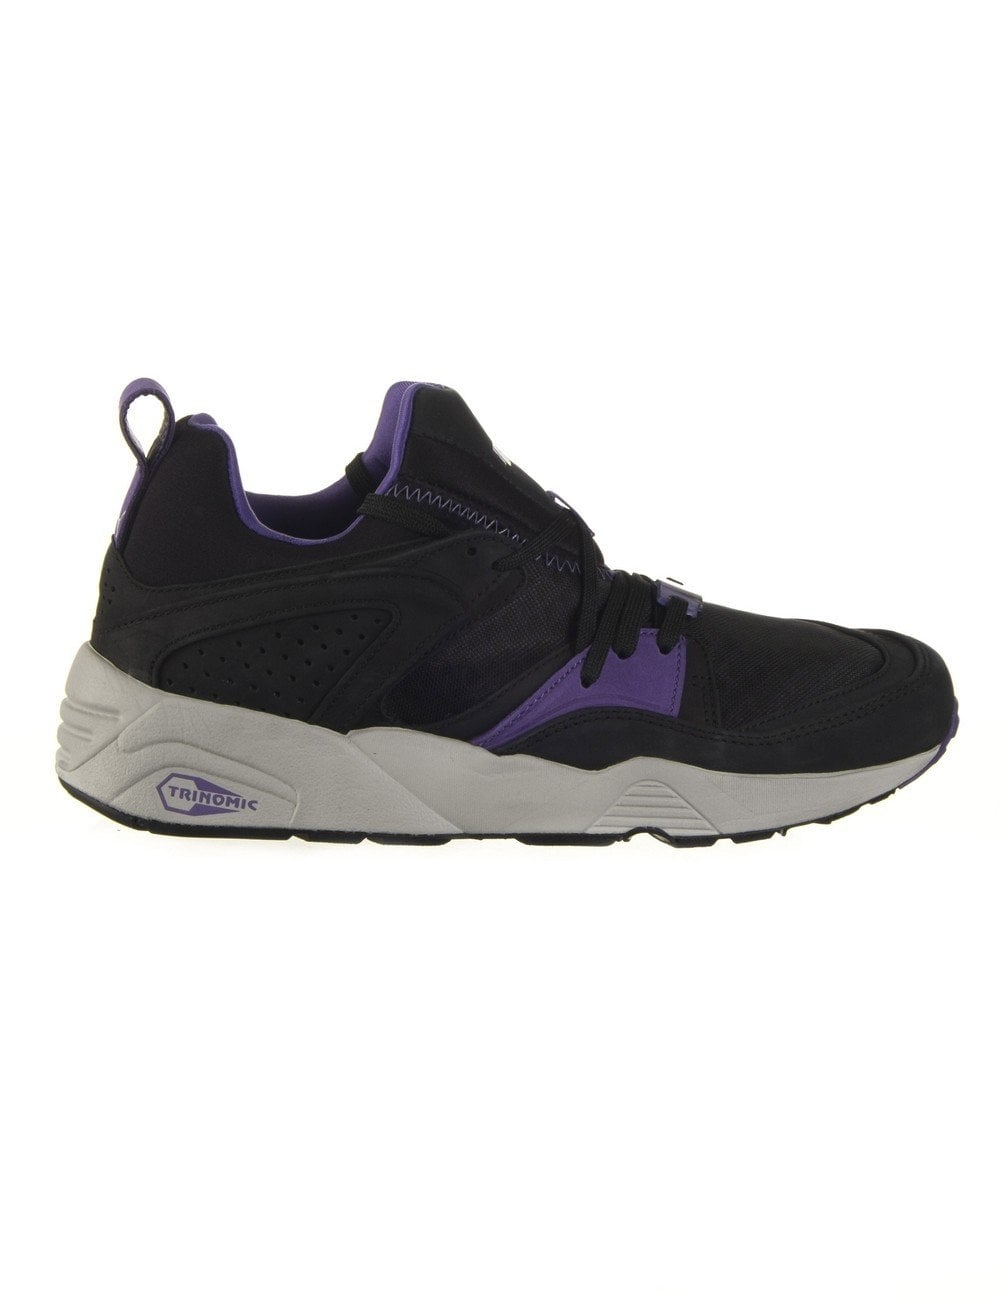 Puma Blaze of Glory Trainers - Black (Crackle Pack) - Footwear from ... e8f29a905